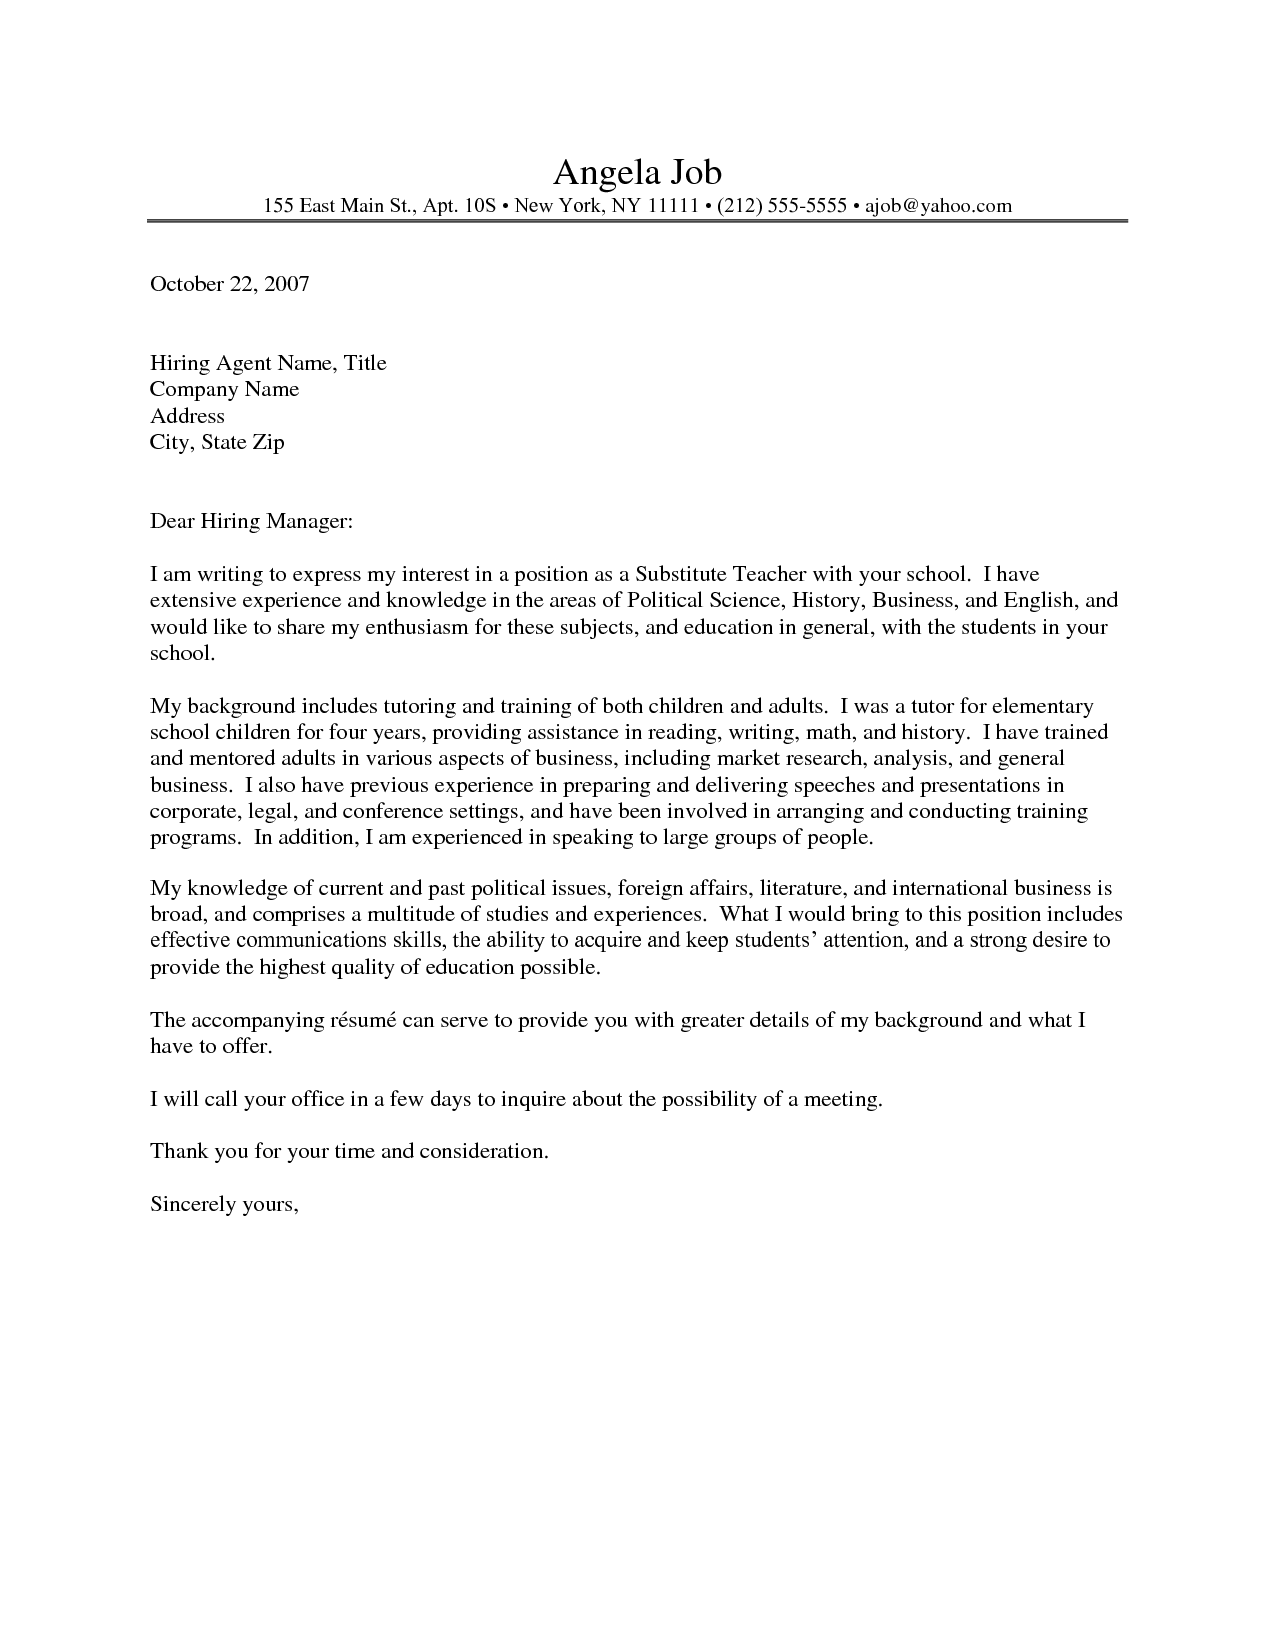 Cover Letters For Entry Level Teaching Positions Mba